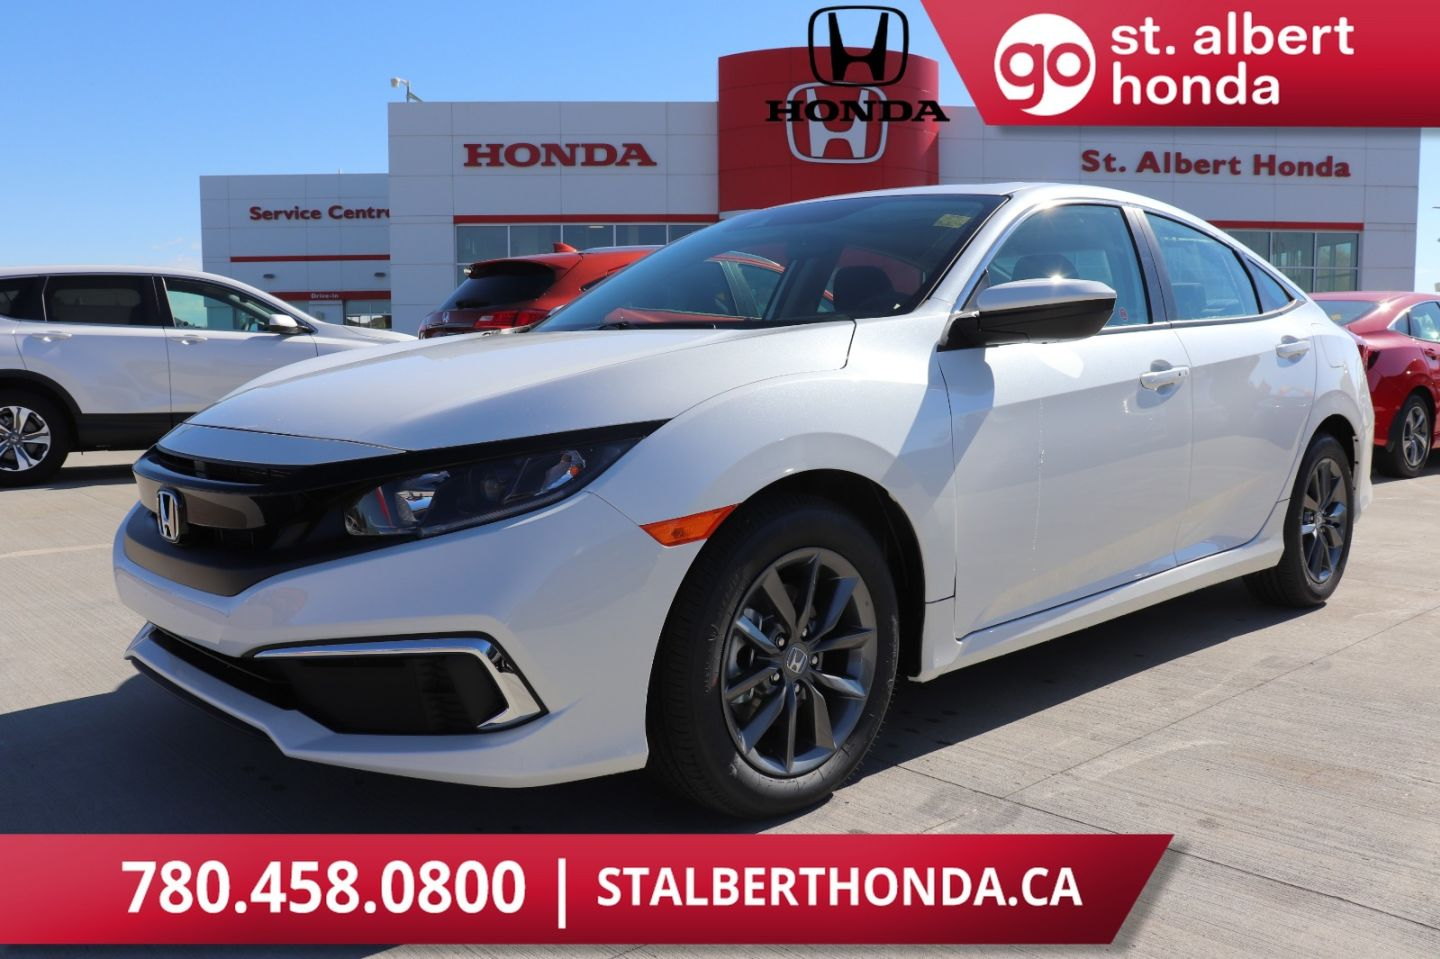 2020 Honda Civic Sedan EX w/New Wheel Design for sale in St. Albert, Alberta